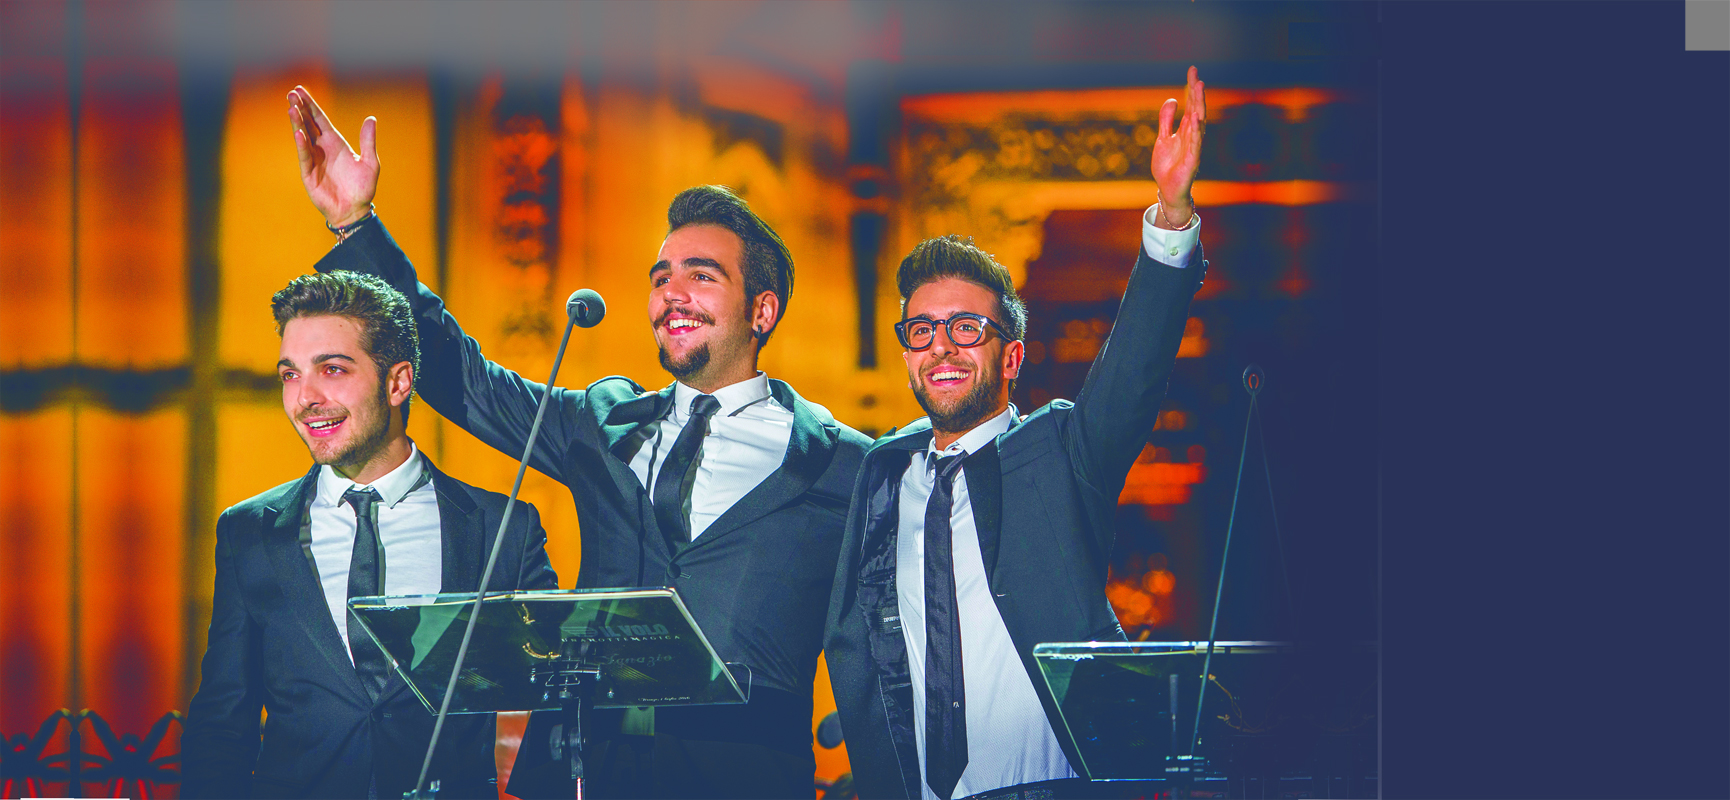 Italian pop vocal trio Il Volo will perform March 2 at the State Theatre in Easton.  (Courtesy Photo)